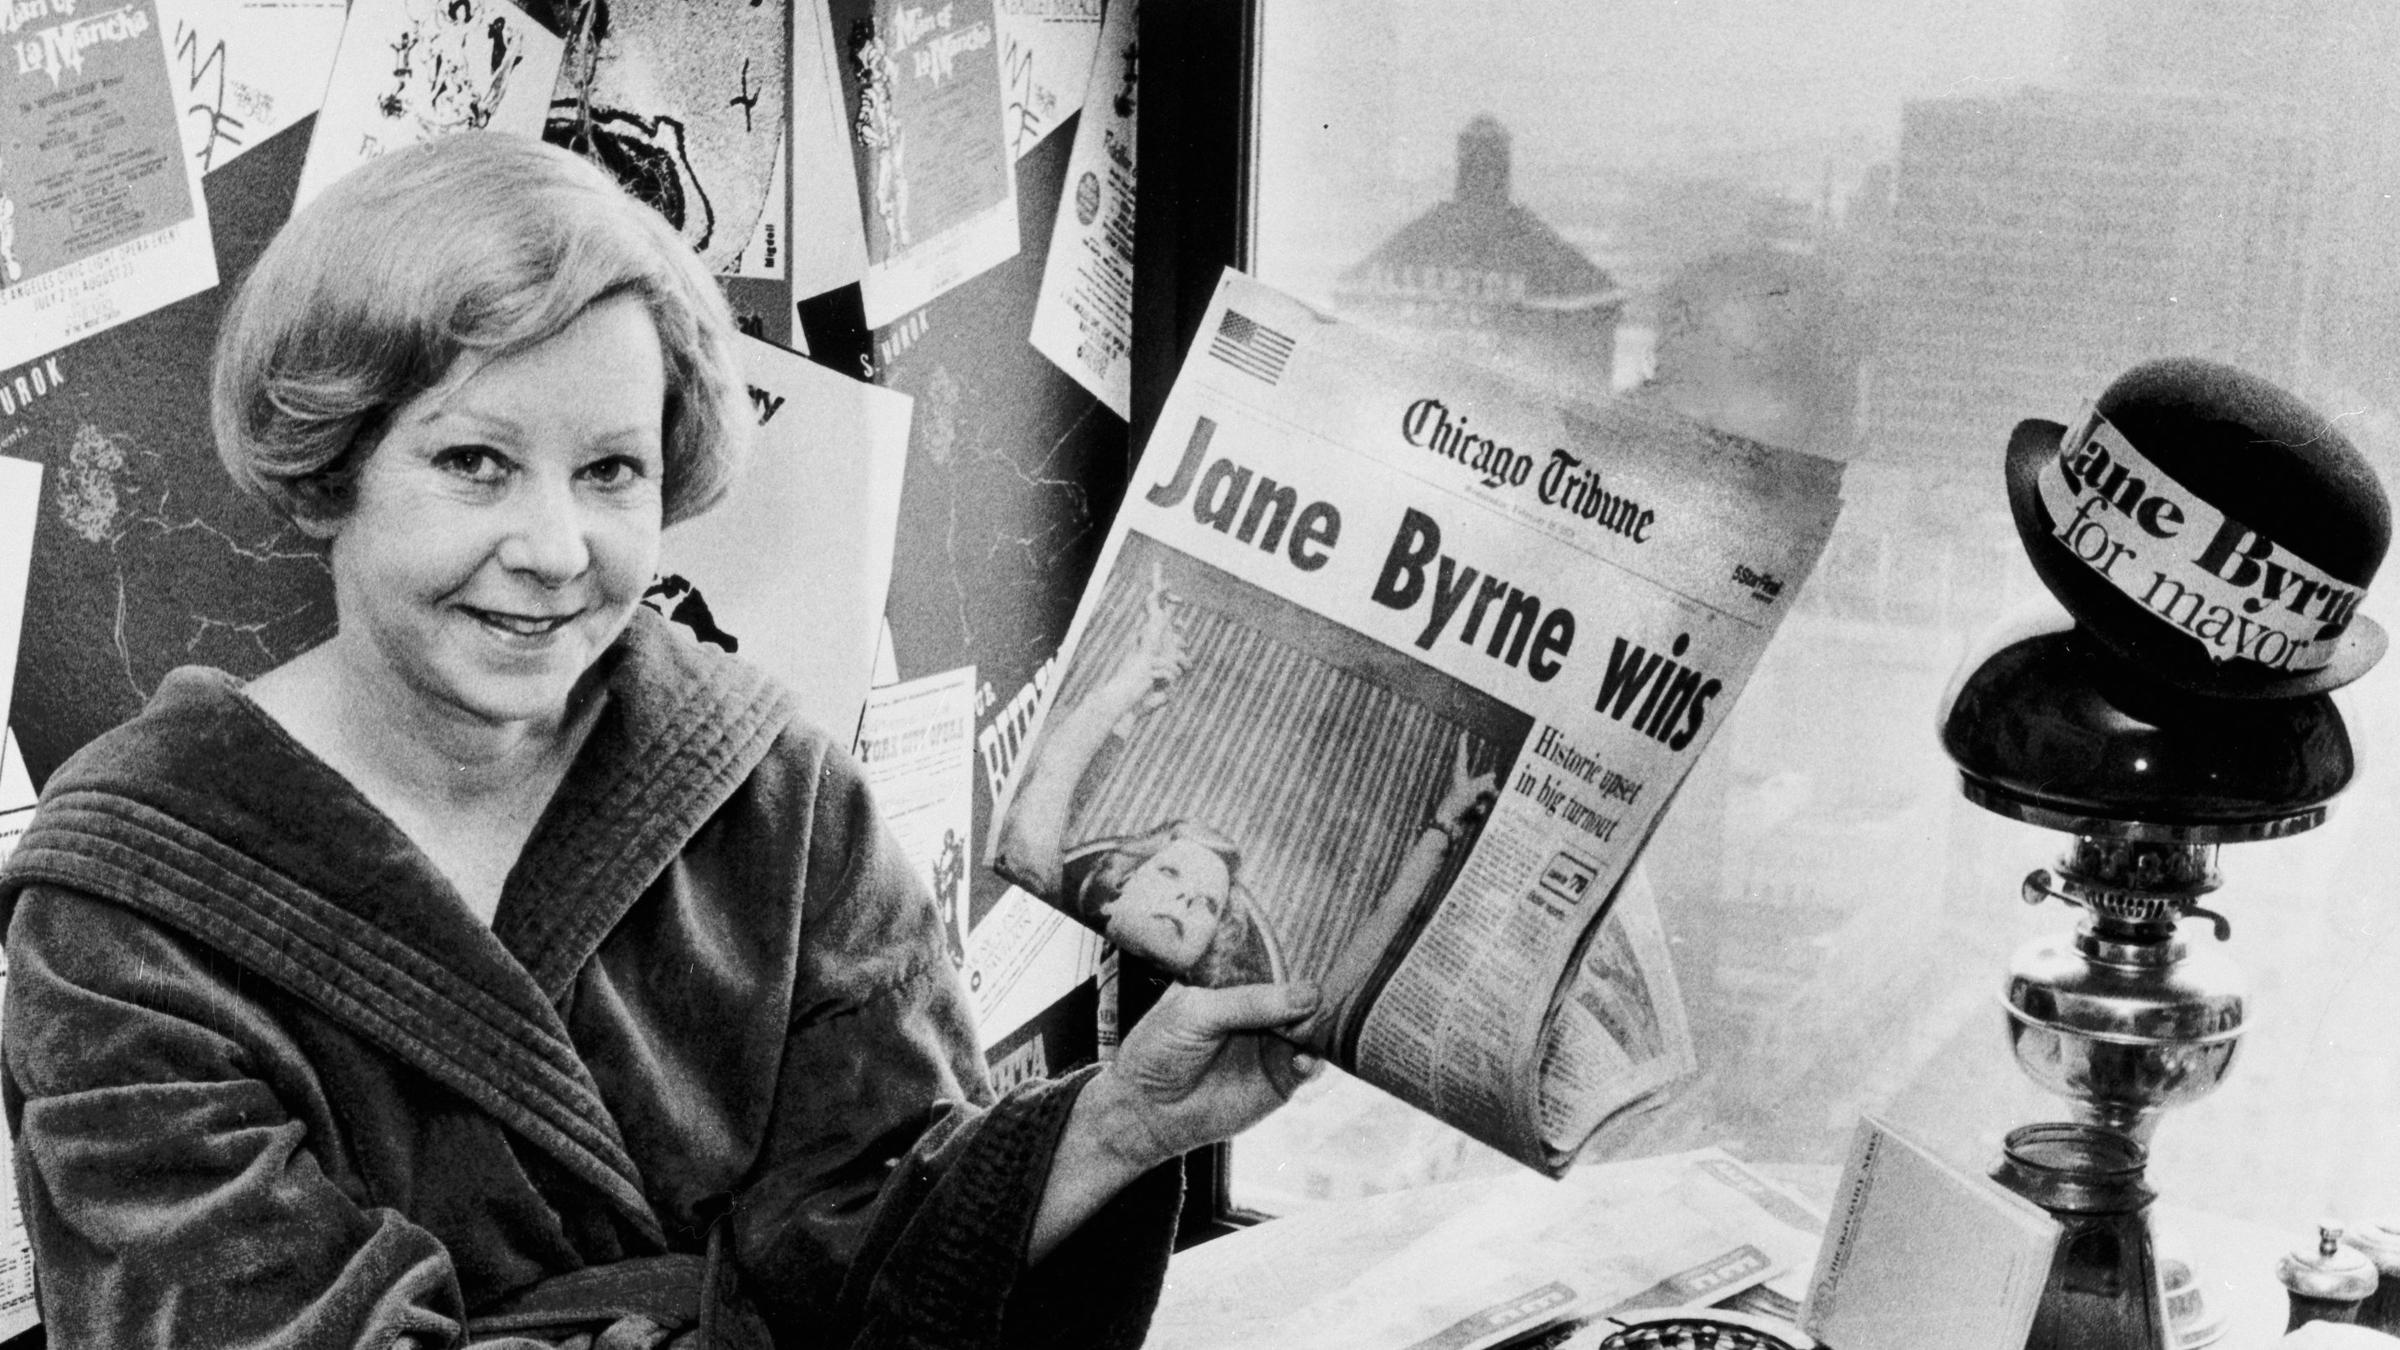 Jane Byrne Dies No Woman Has Led A Larger U S City New